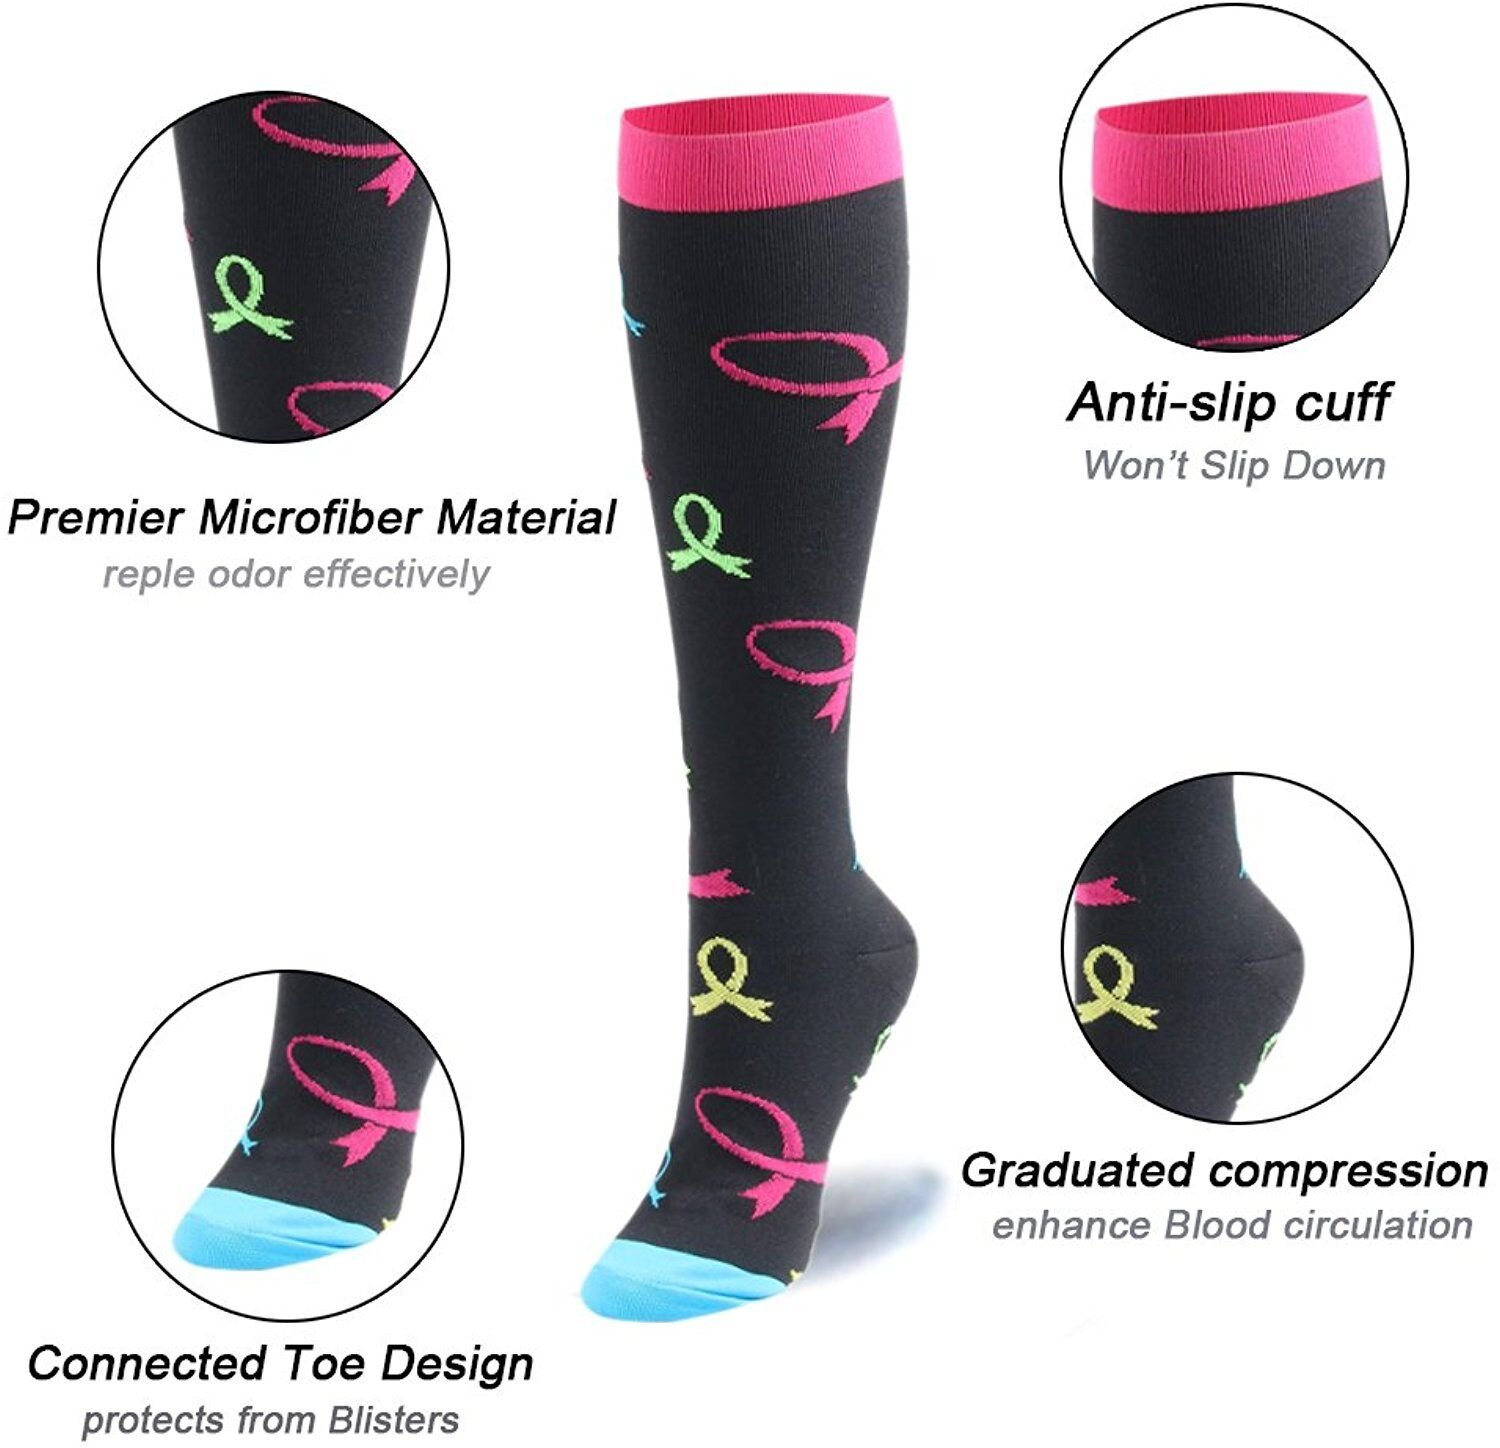 Assorted 1 Compression Socks for Women /& Men-3//6 Pairs Best Graduated Athletic Fit for Running,Nurses,Flight Travel,Pregnancy,Circulation/&Recovery 20-25mmhg , Large//Extra Large 6 Pairs